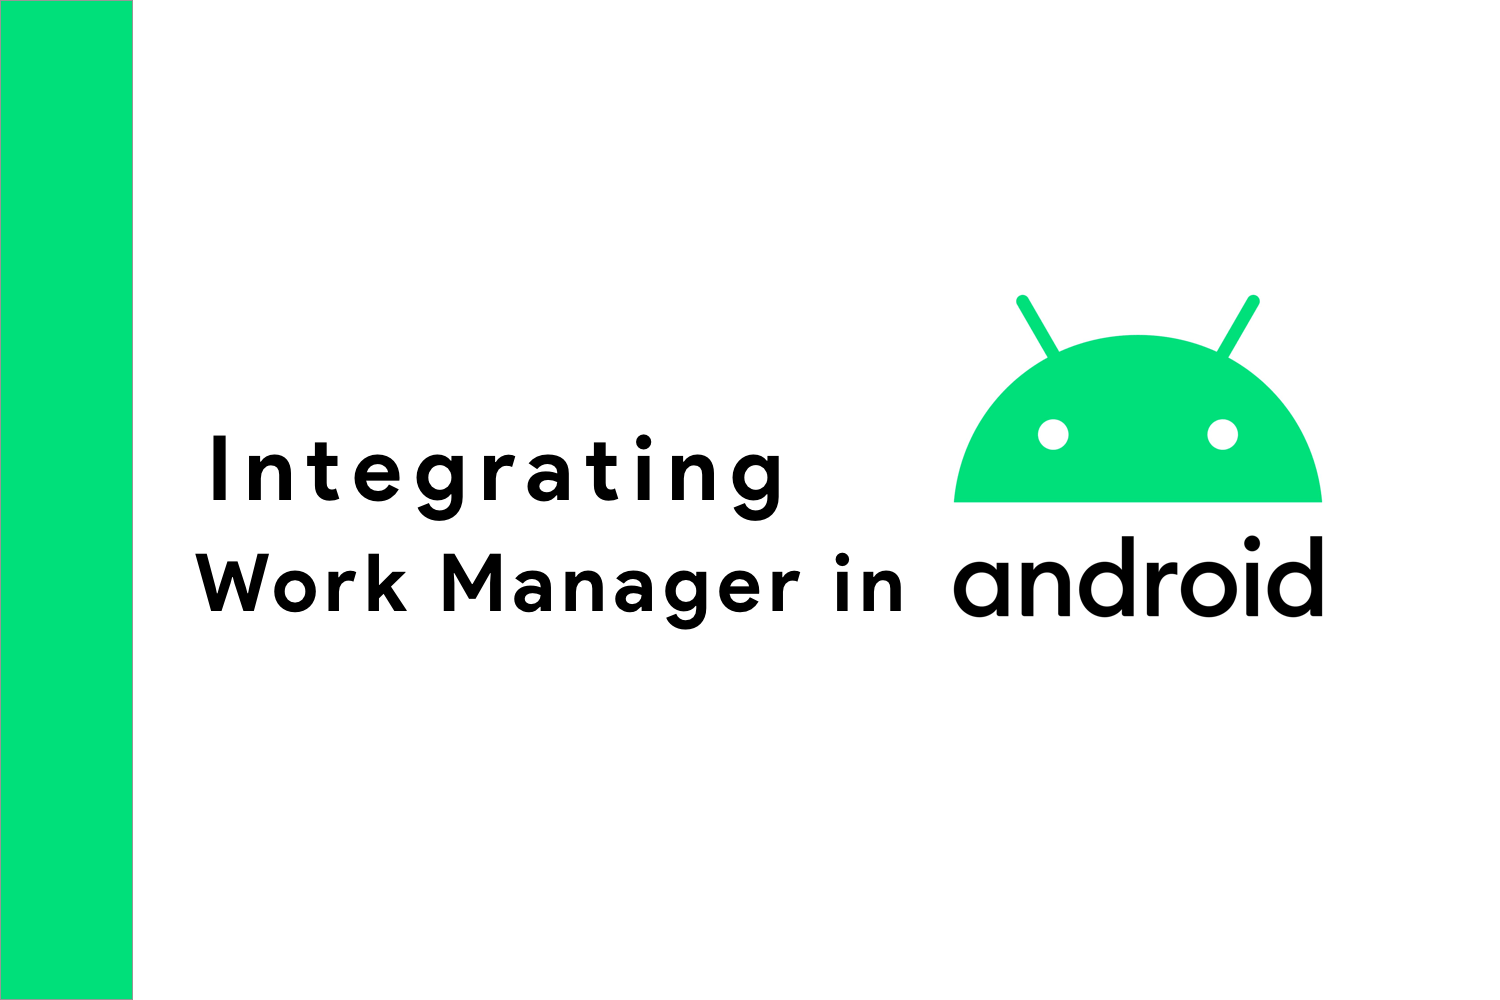 Integrating Work Manager - Android Tutorial